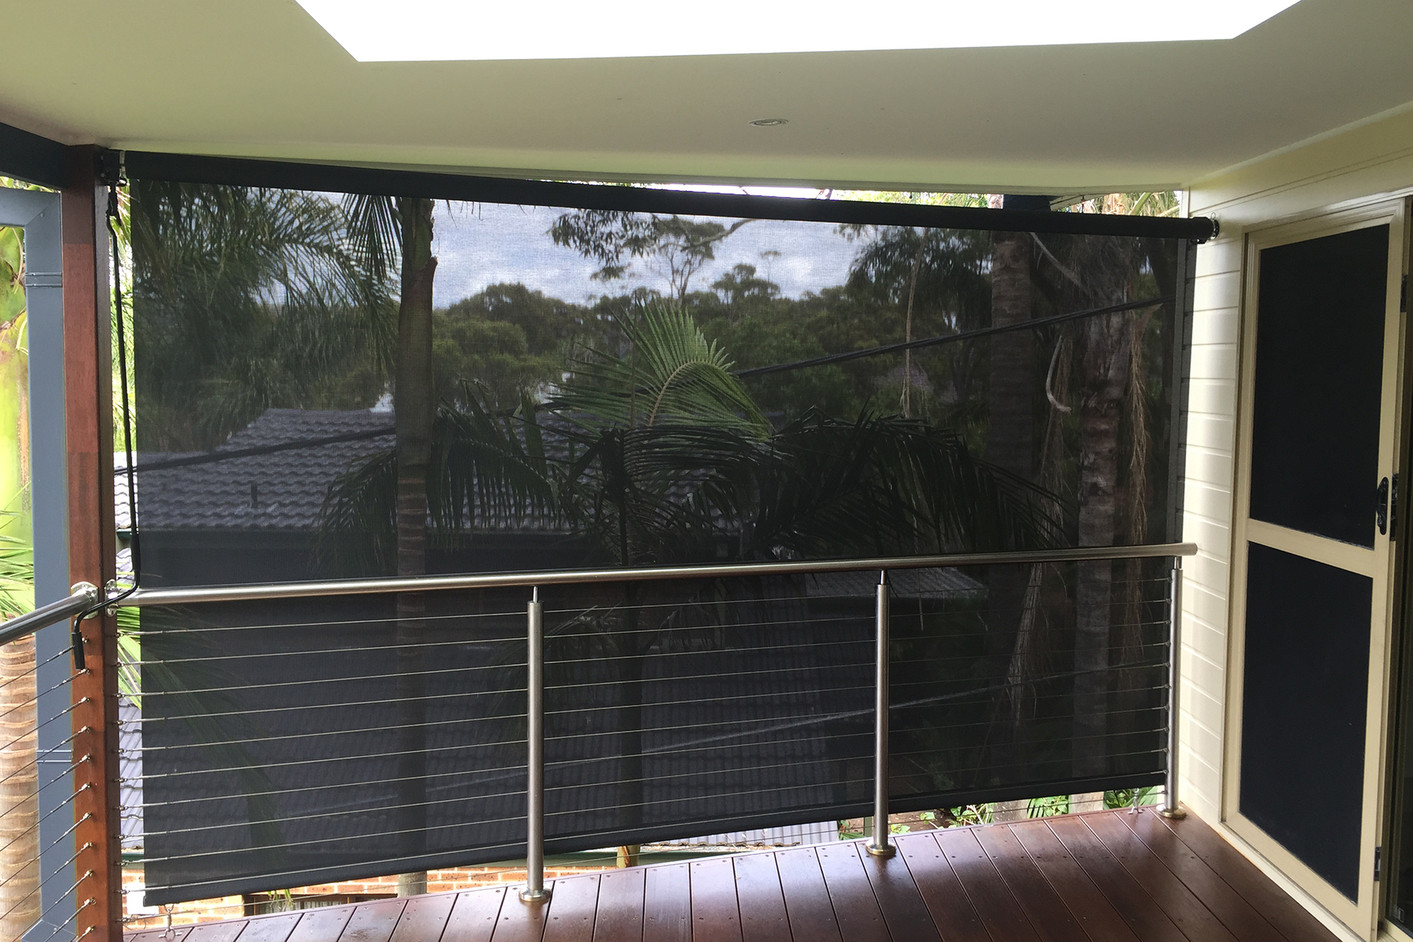 Outdoor awning | External roller blind | Cafe blinds | Straight drop awning|